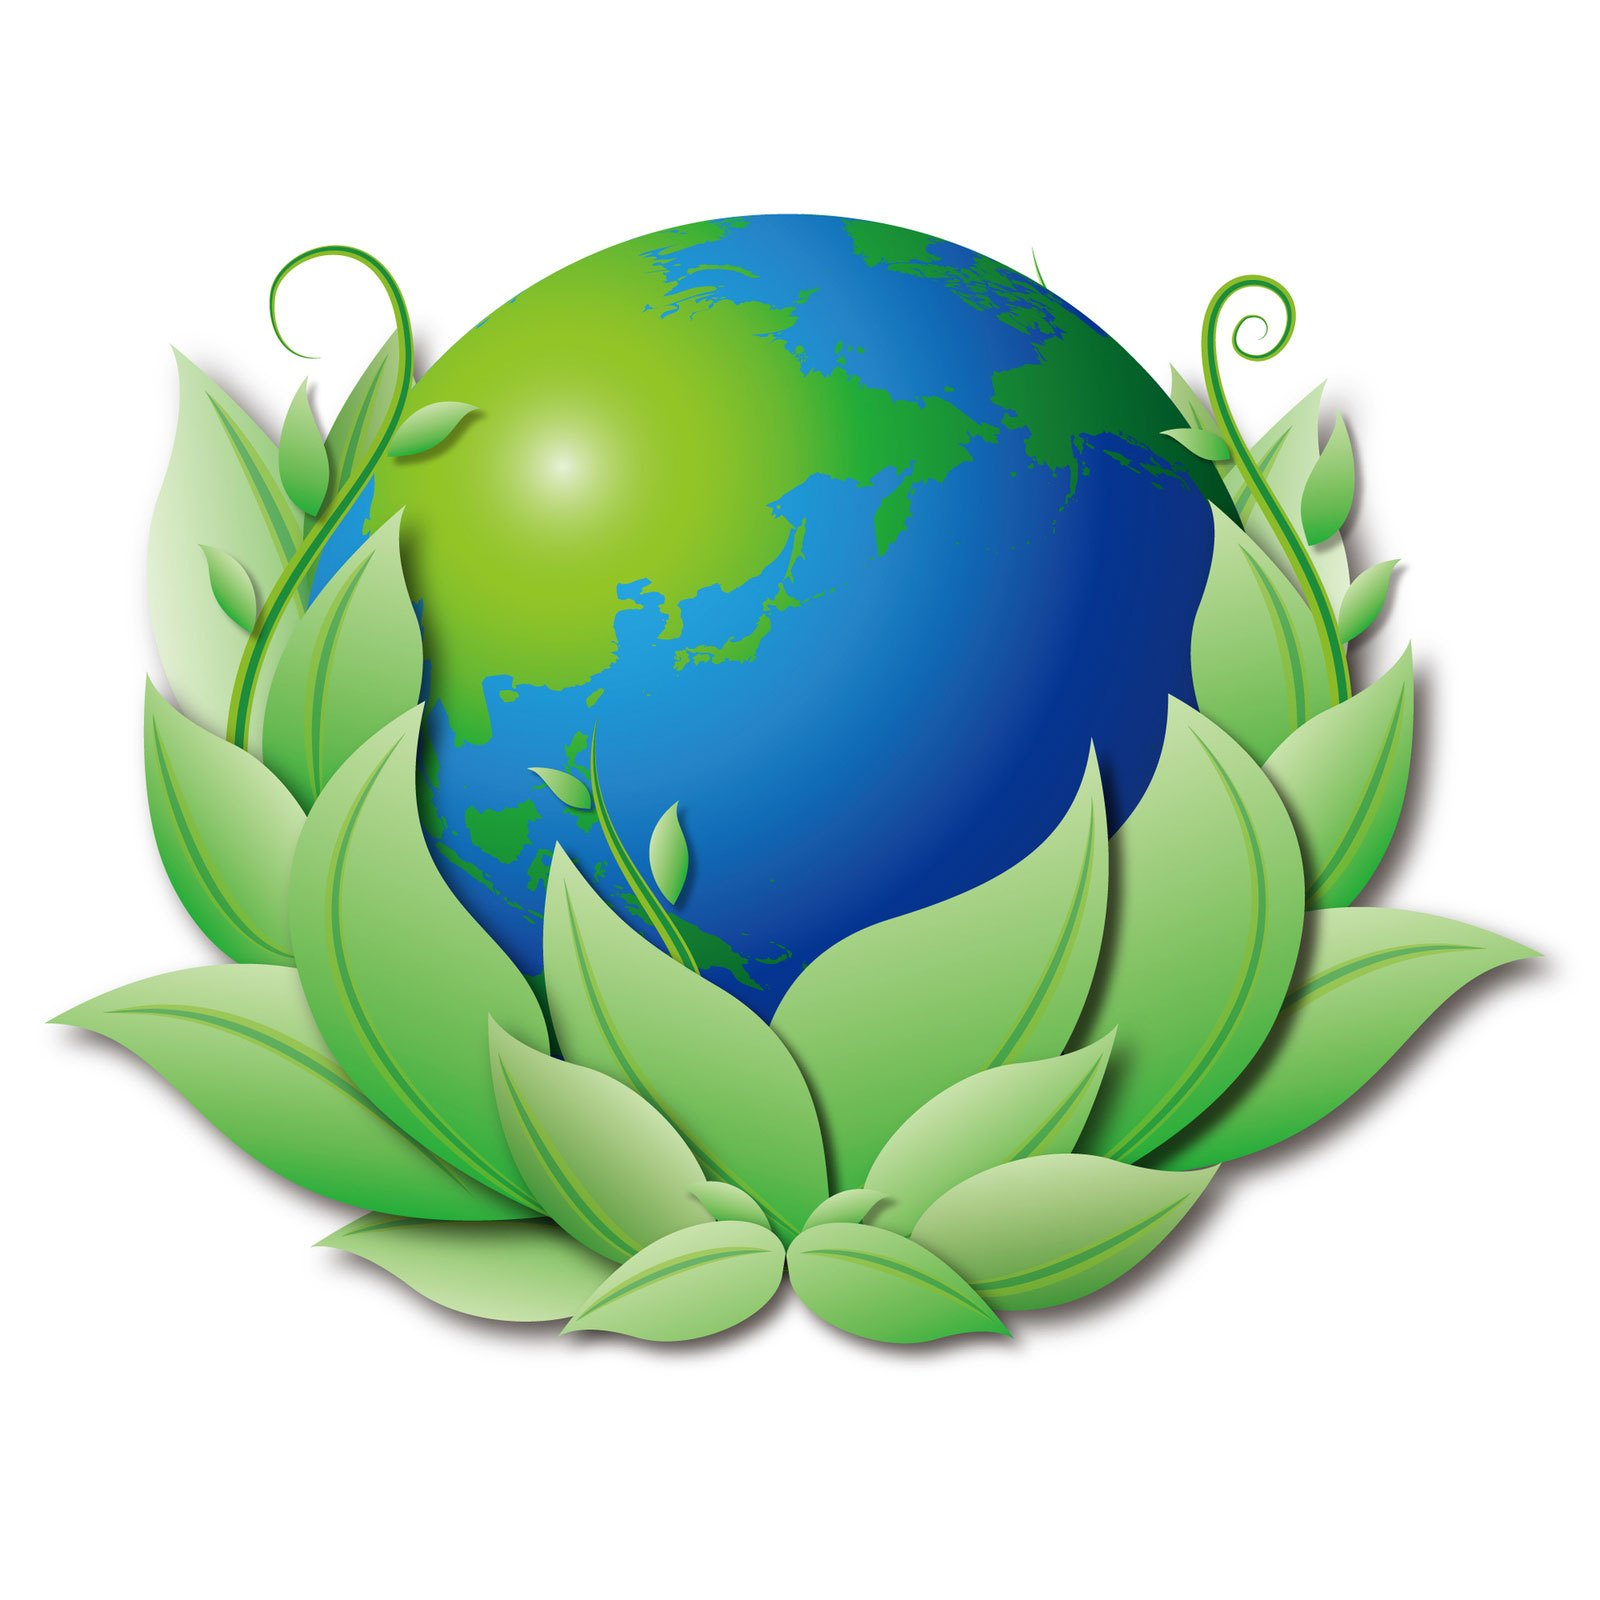 Save planet earth clipart 5 » Clipart Portal.